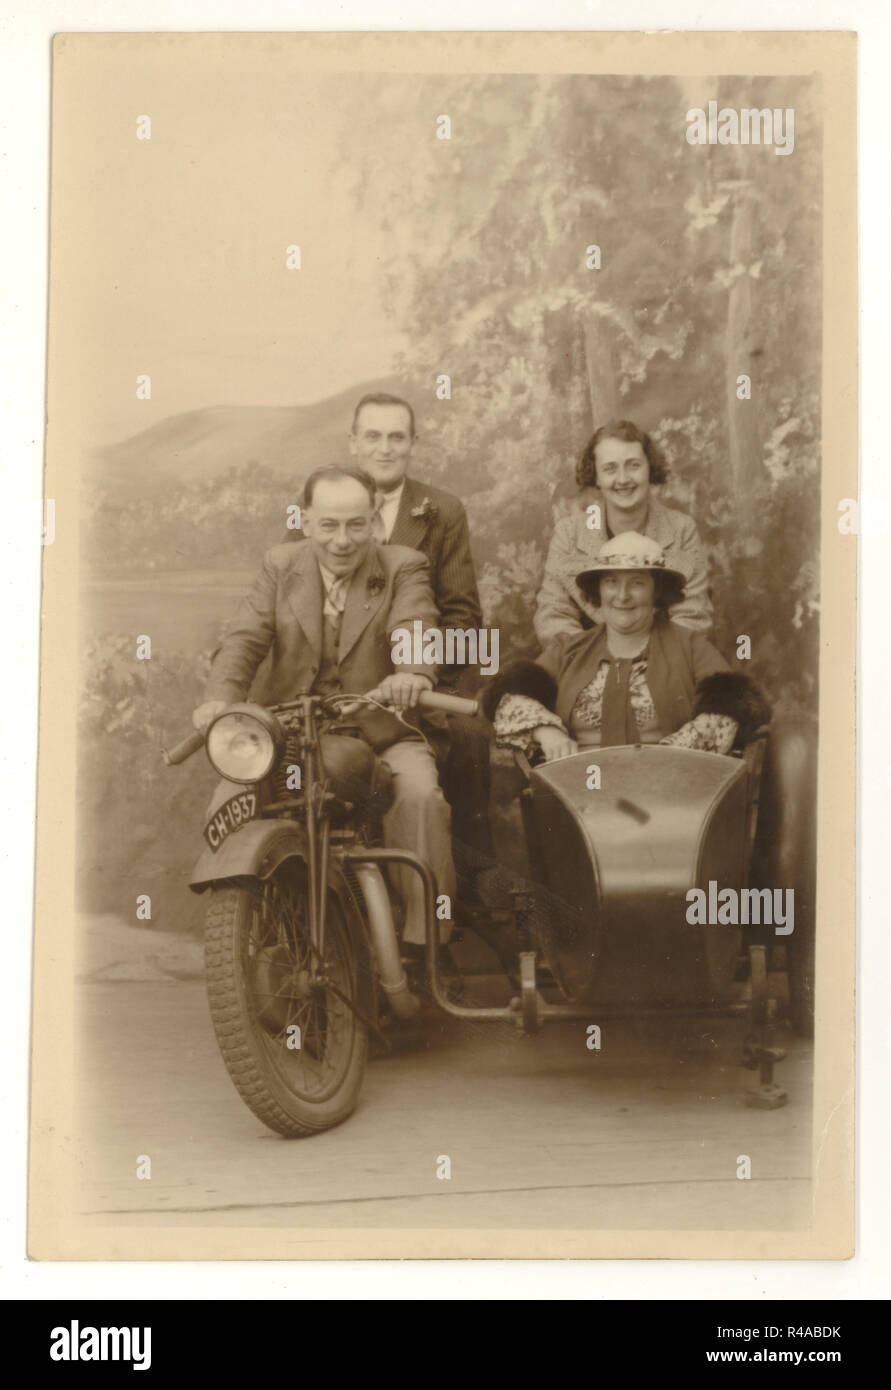 Studio portrait postcard / greetings card of happy holiday makers posing on a motorbike and sidecar prop, studio of Charles Howell, Blackpool, Lancashire, U.K. 1937 - Stock Image